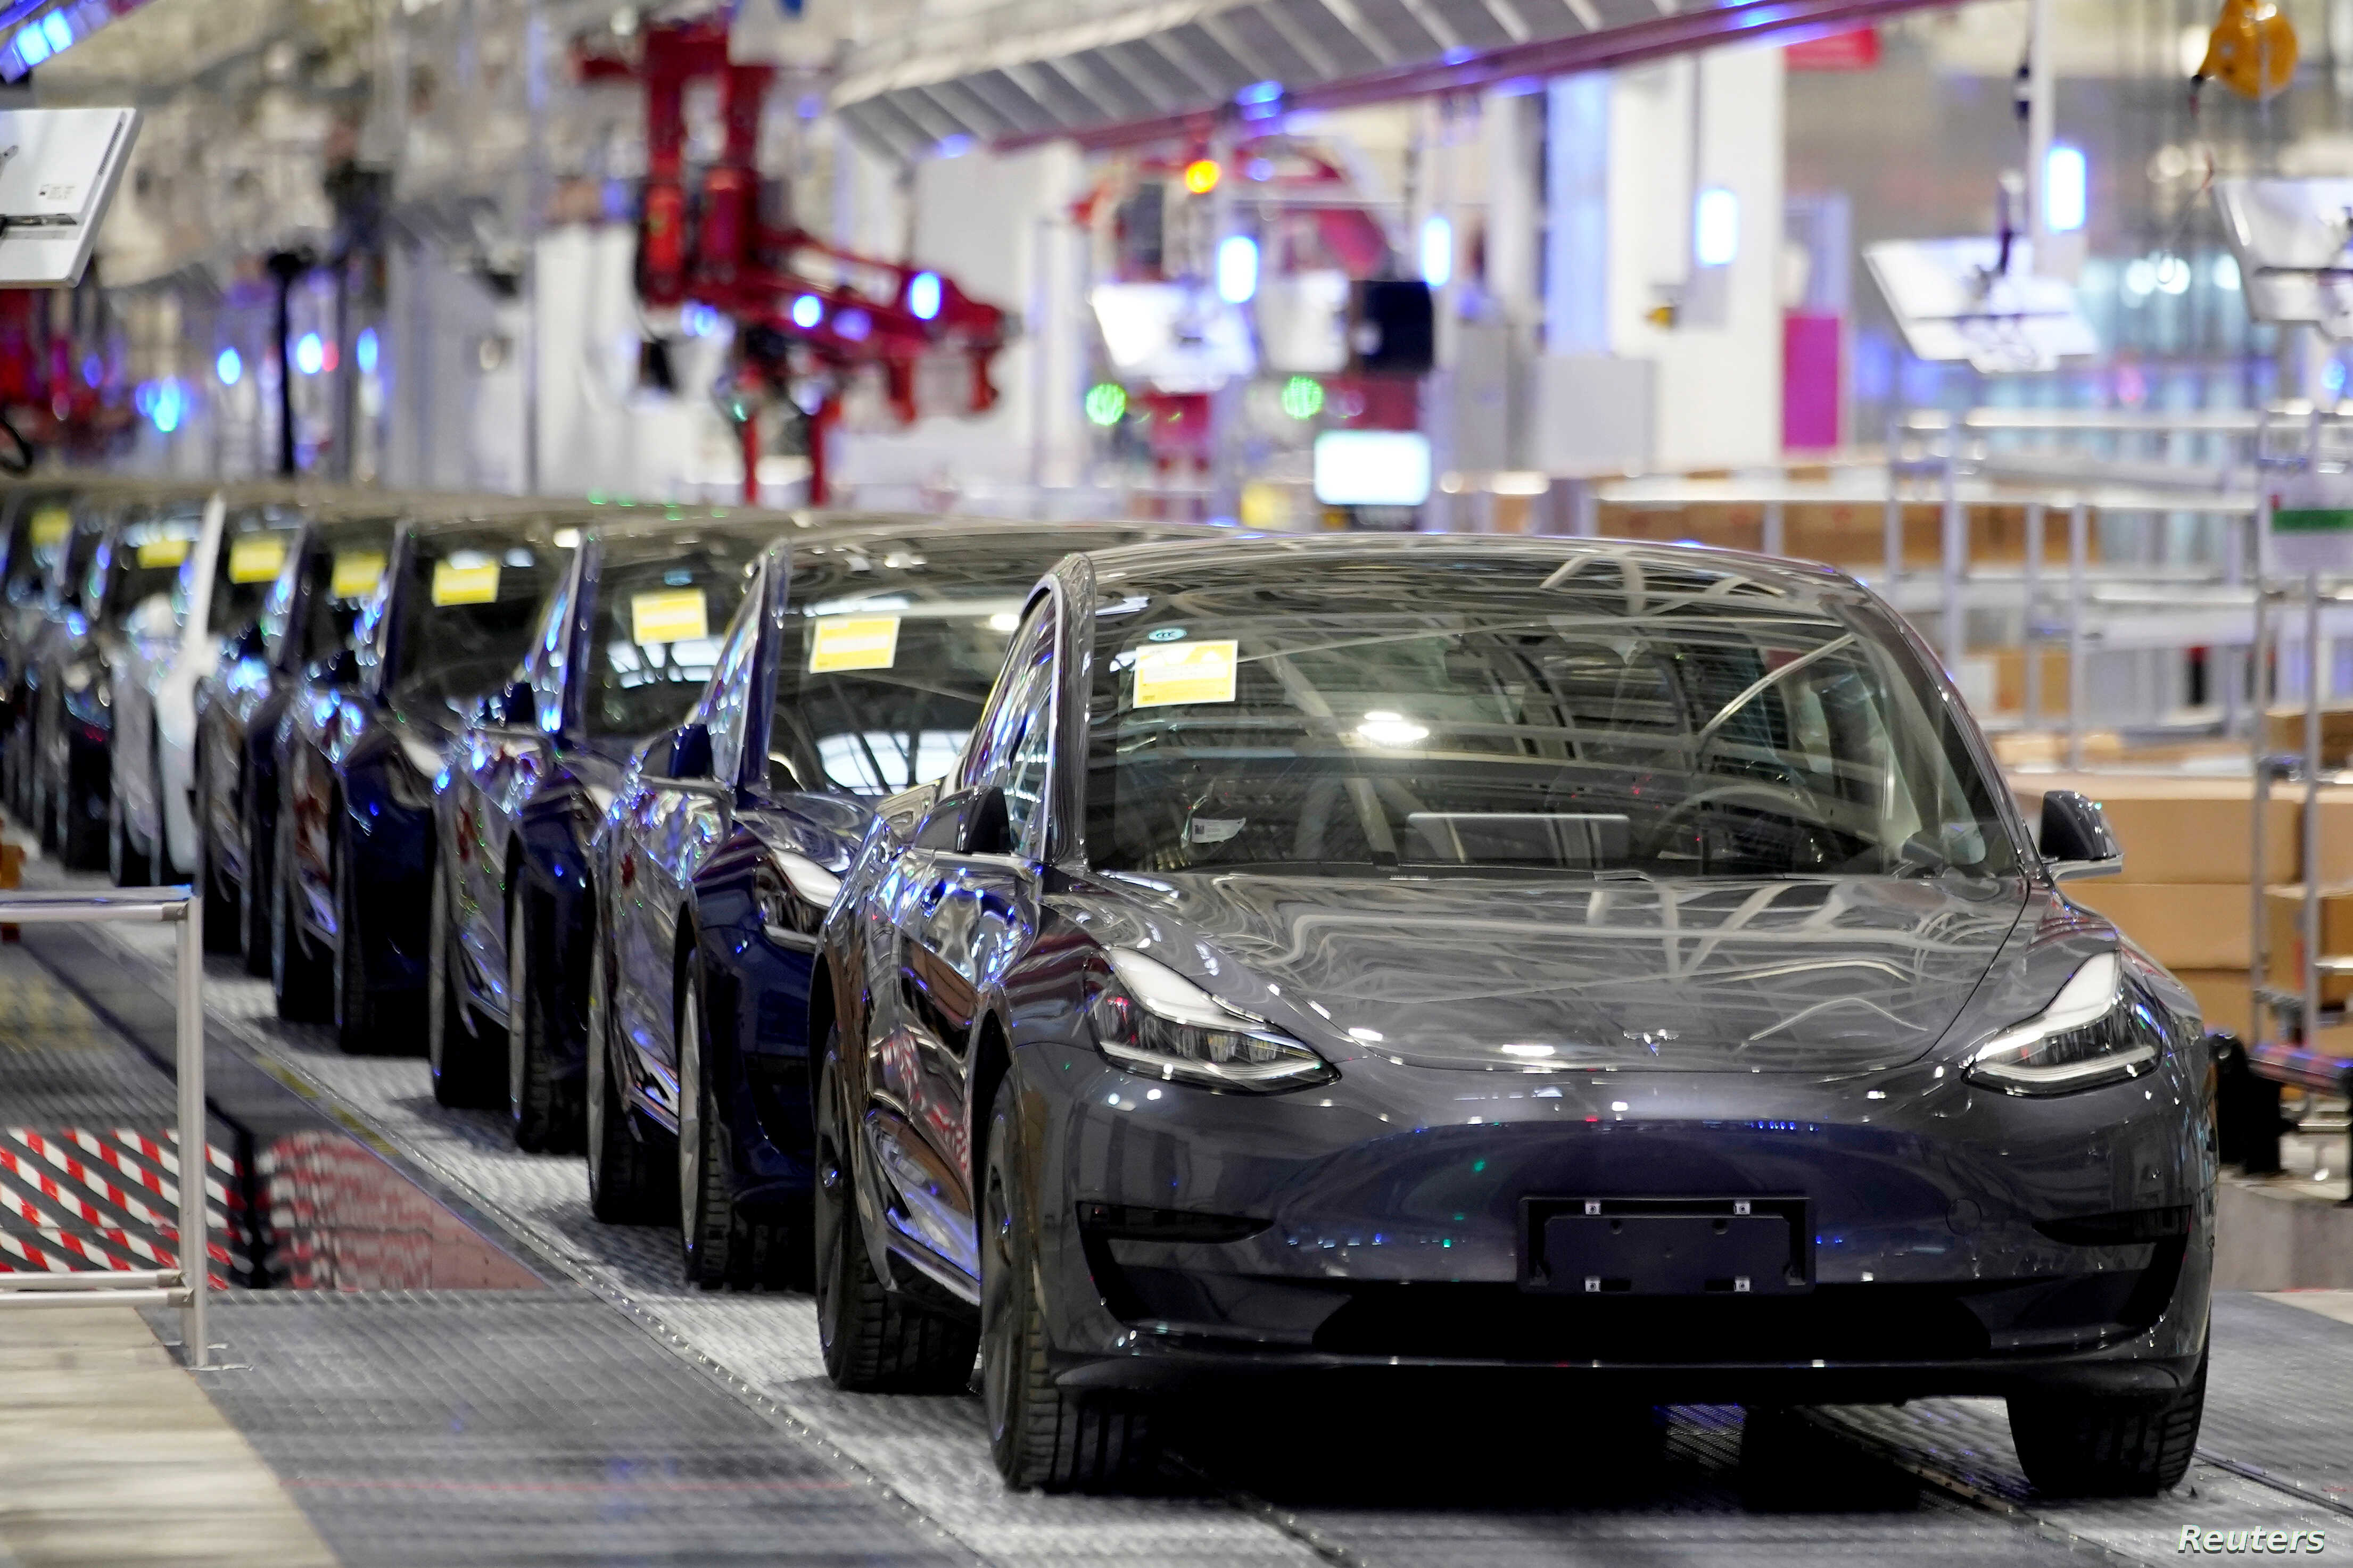 Tesla China-made Model 3 vehicles are seen during a delivery event at its factory in Shanghai, China January 7, 2020. REUTERS/Aly Song - RC2YAE9II6HS